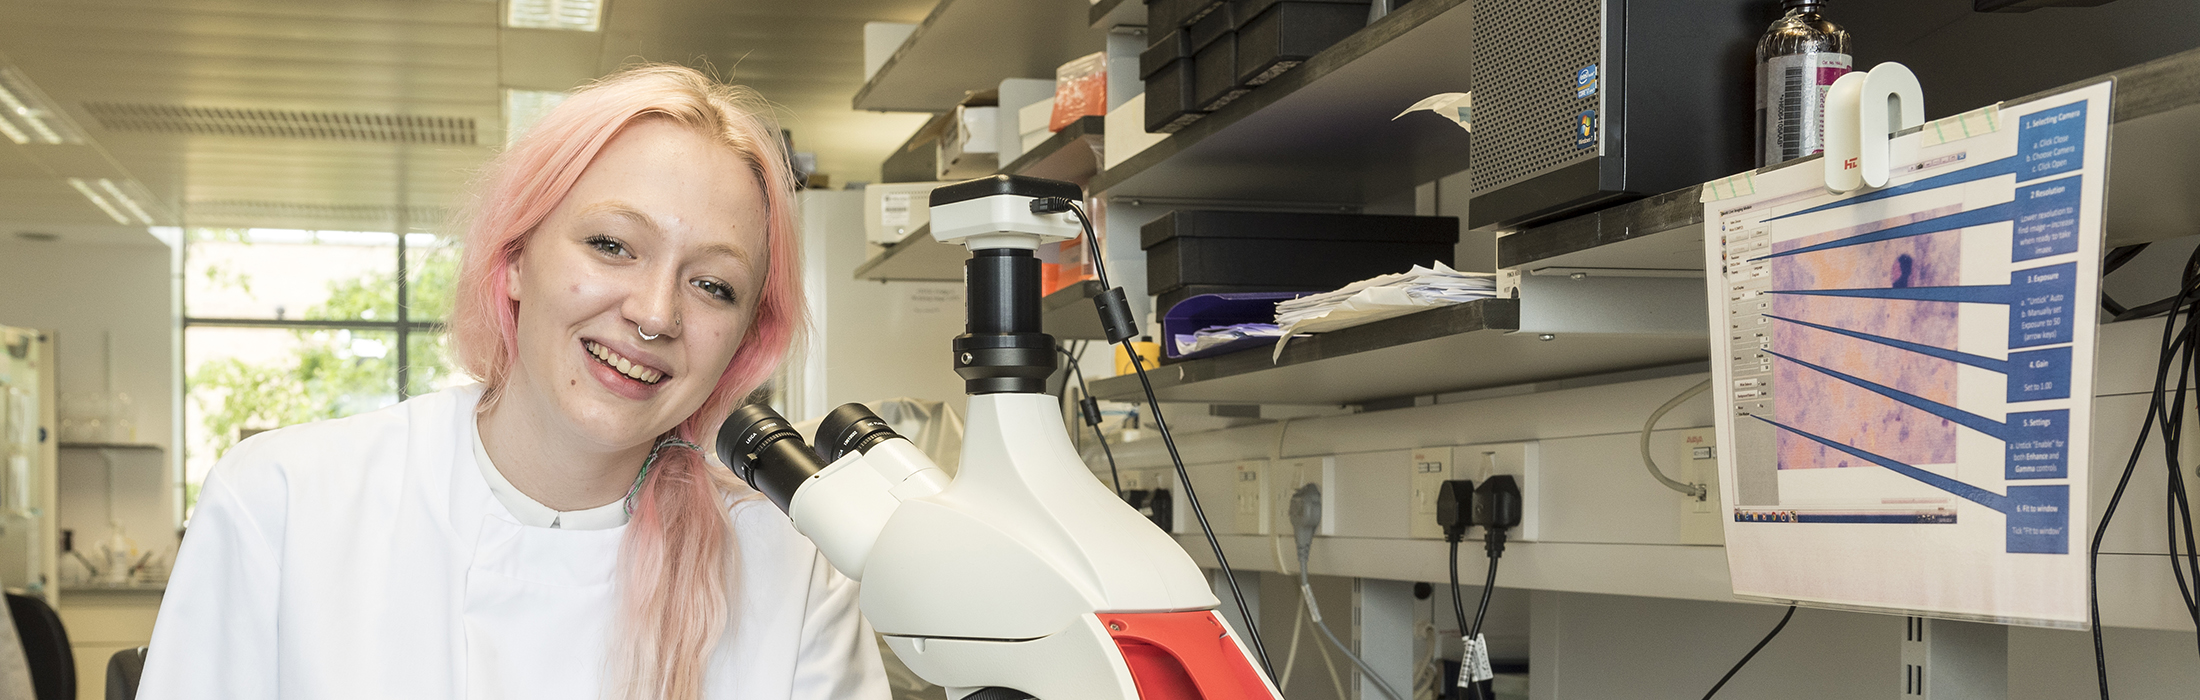 Sophie Jamieson - Lab Technician Apprentice at the Jenner Institute